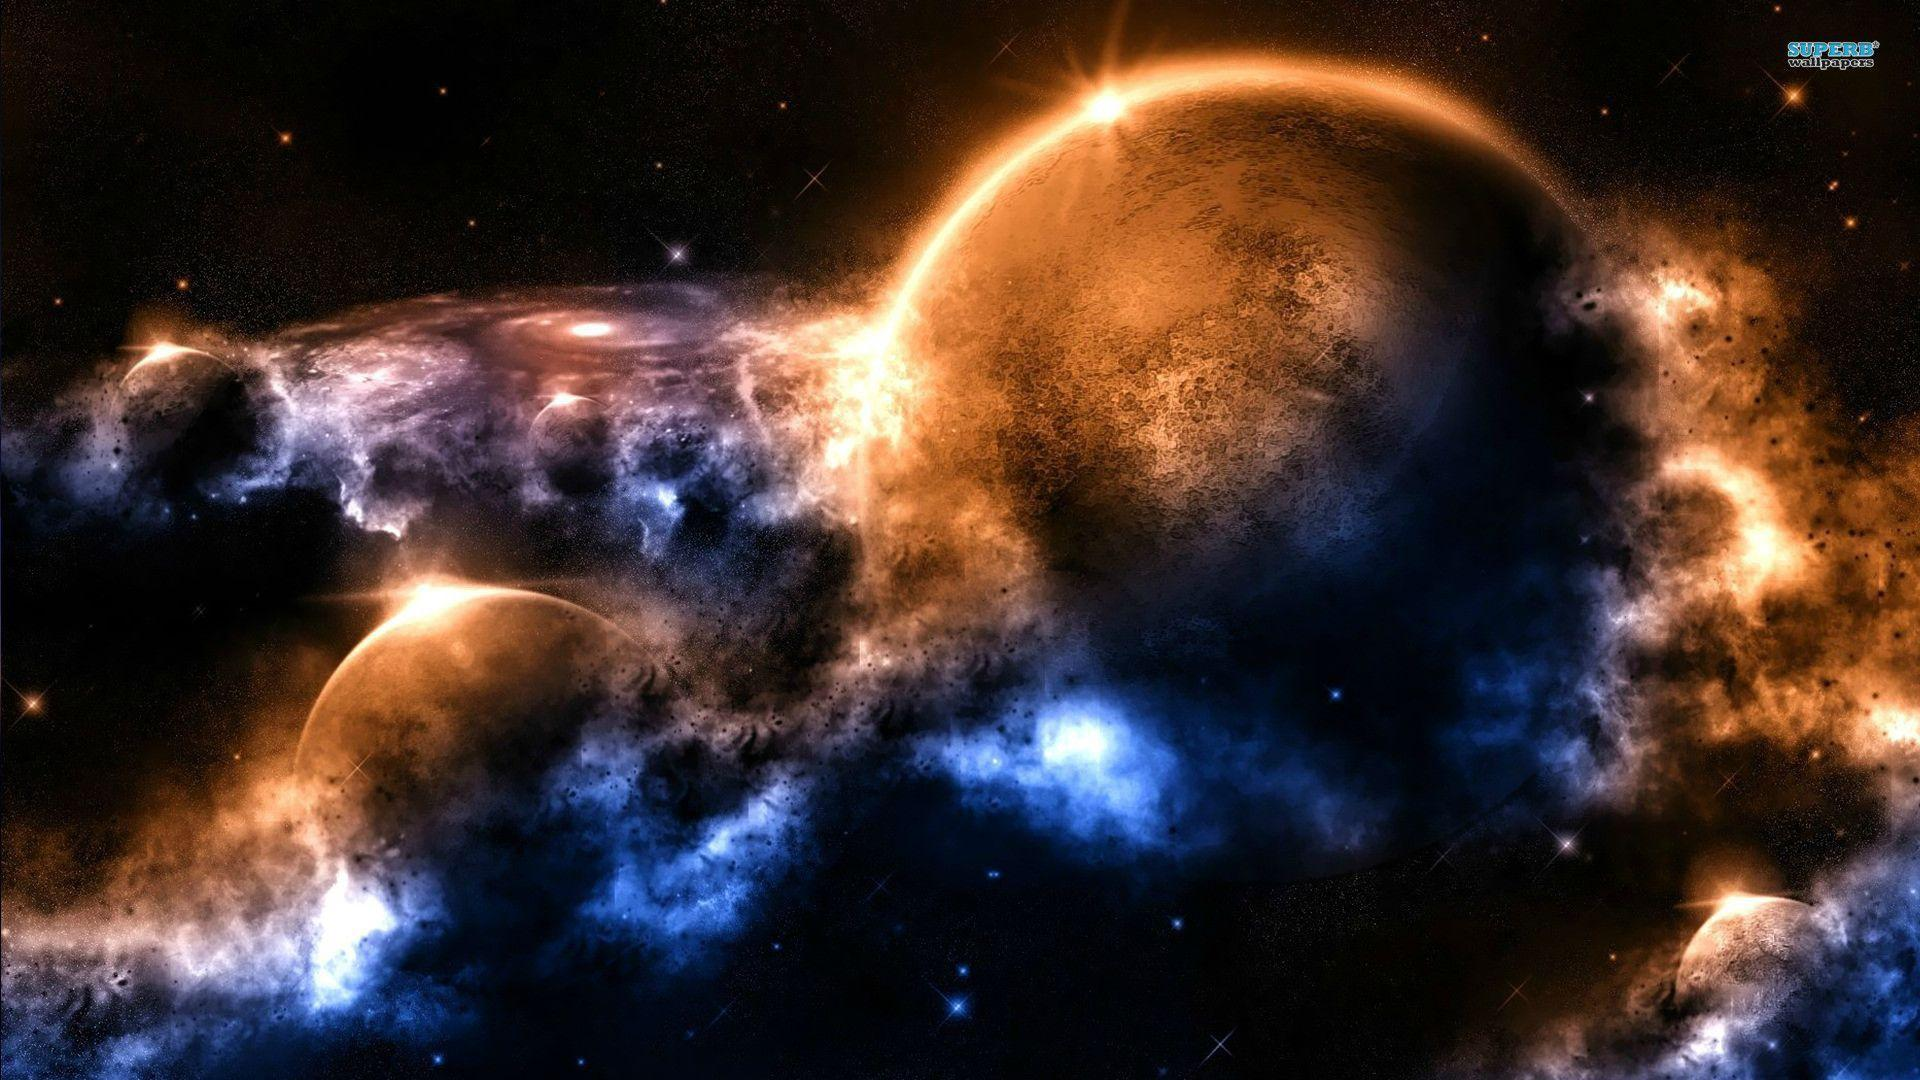 Outer Space Wallpapers Hd 1080P 12 HD Wallpaperscom